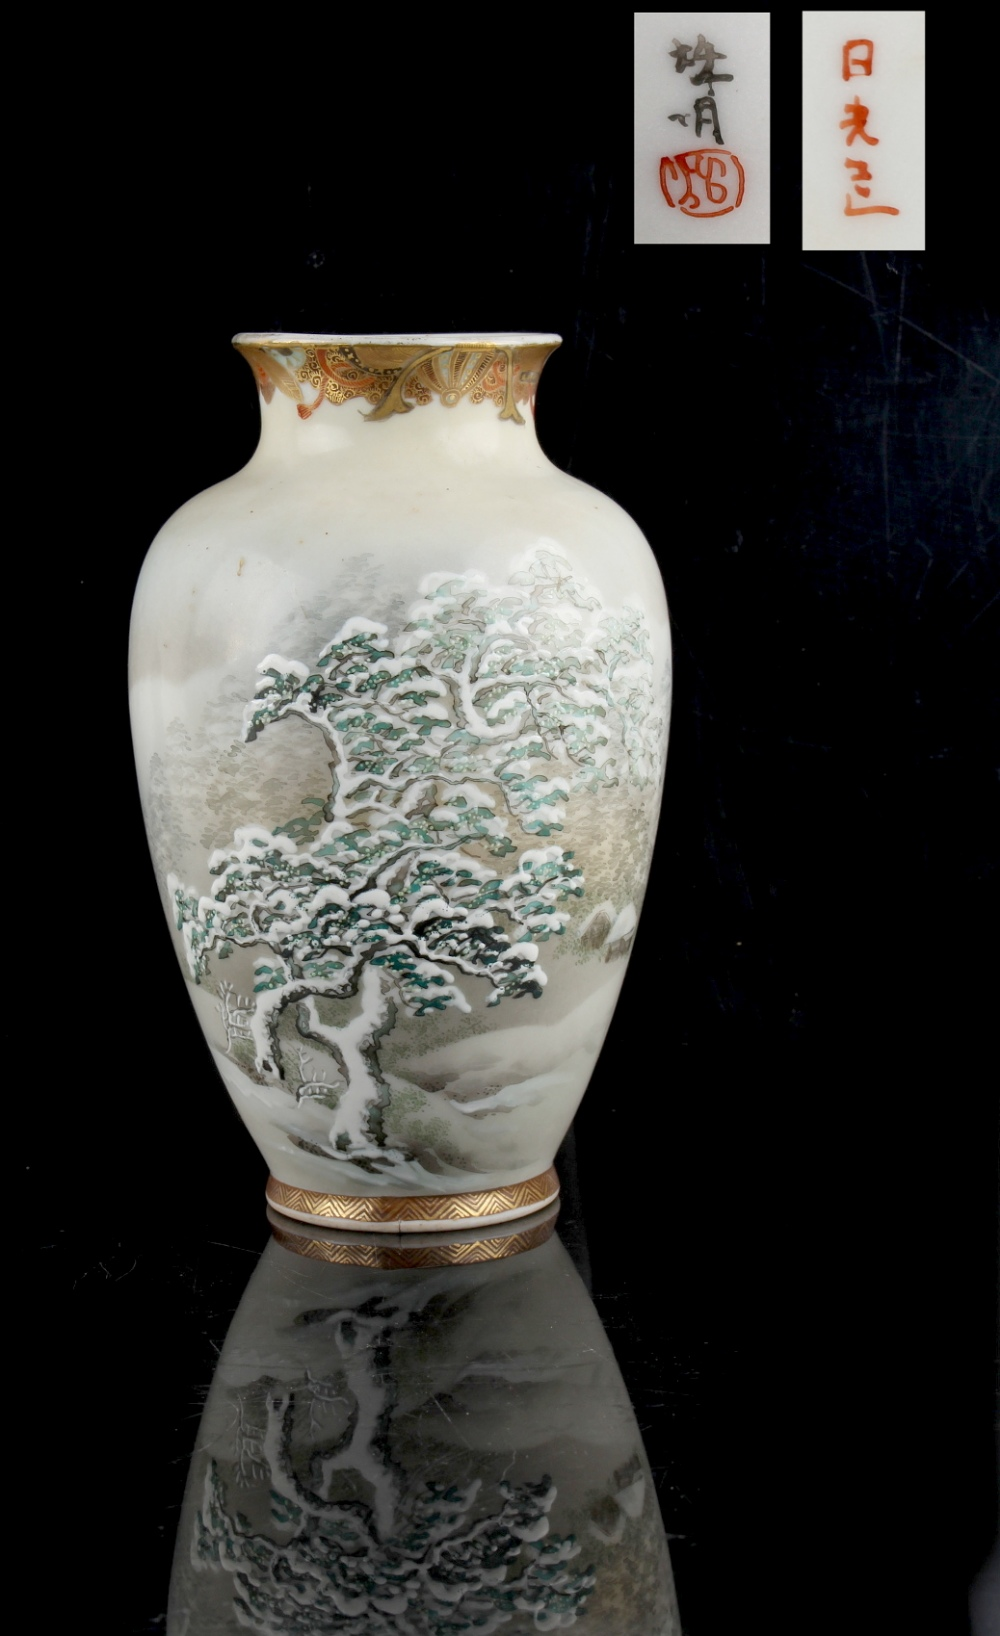 Lot 44 - Property of a lady - an early 20th century Japanese porcelain vase with low relief moulded & painted